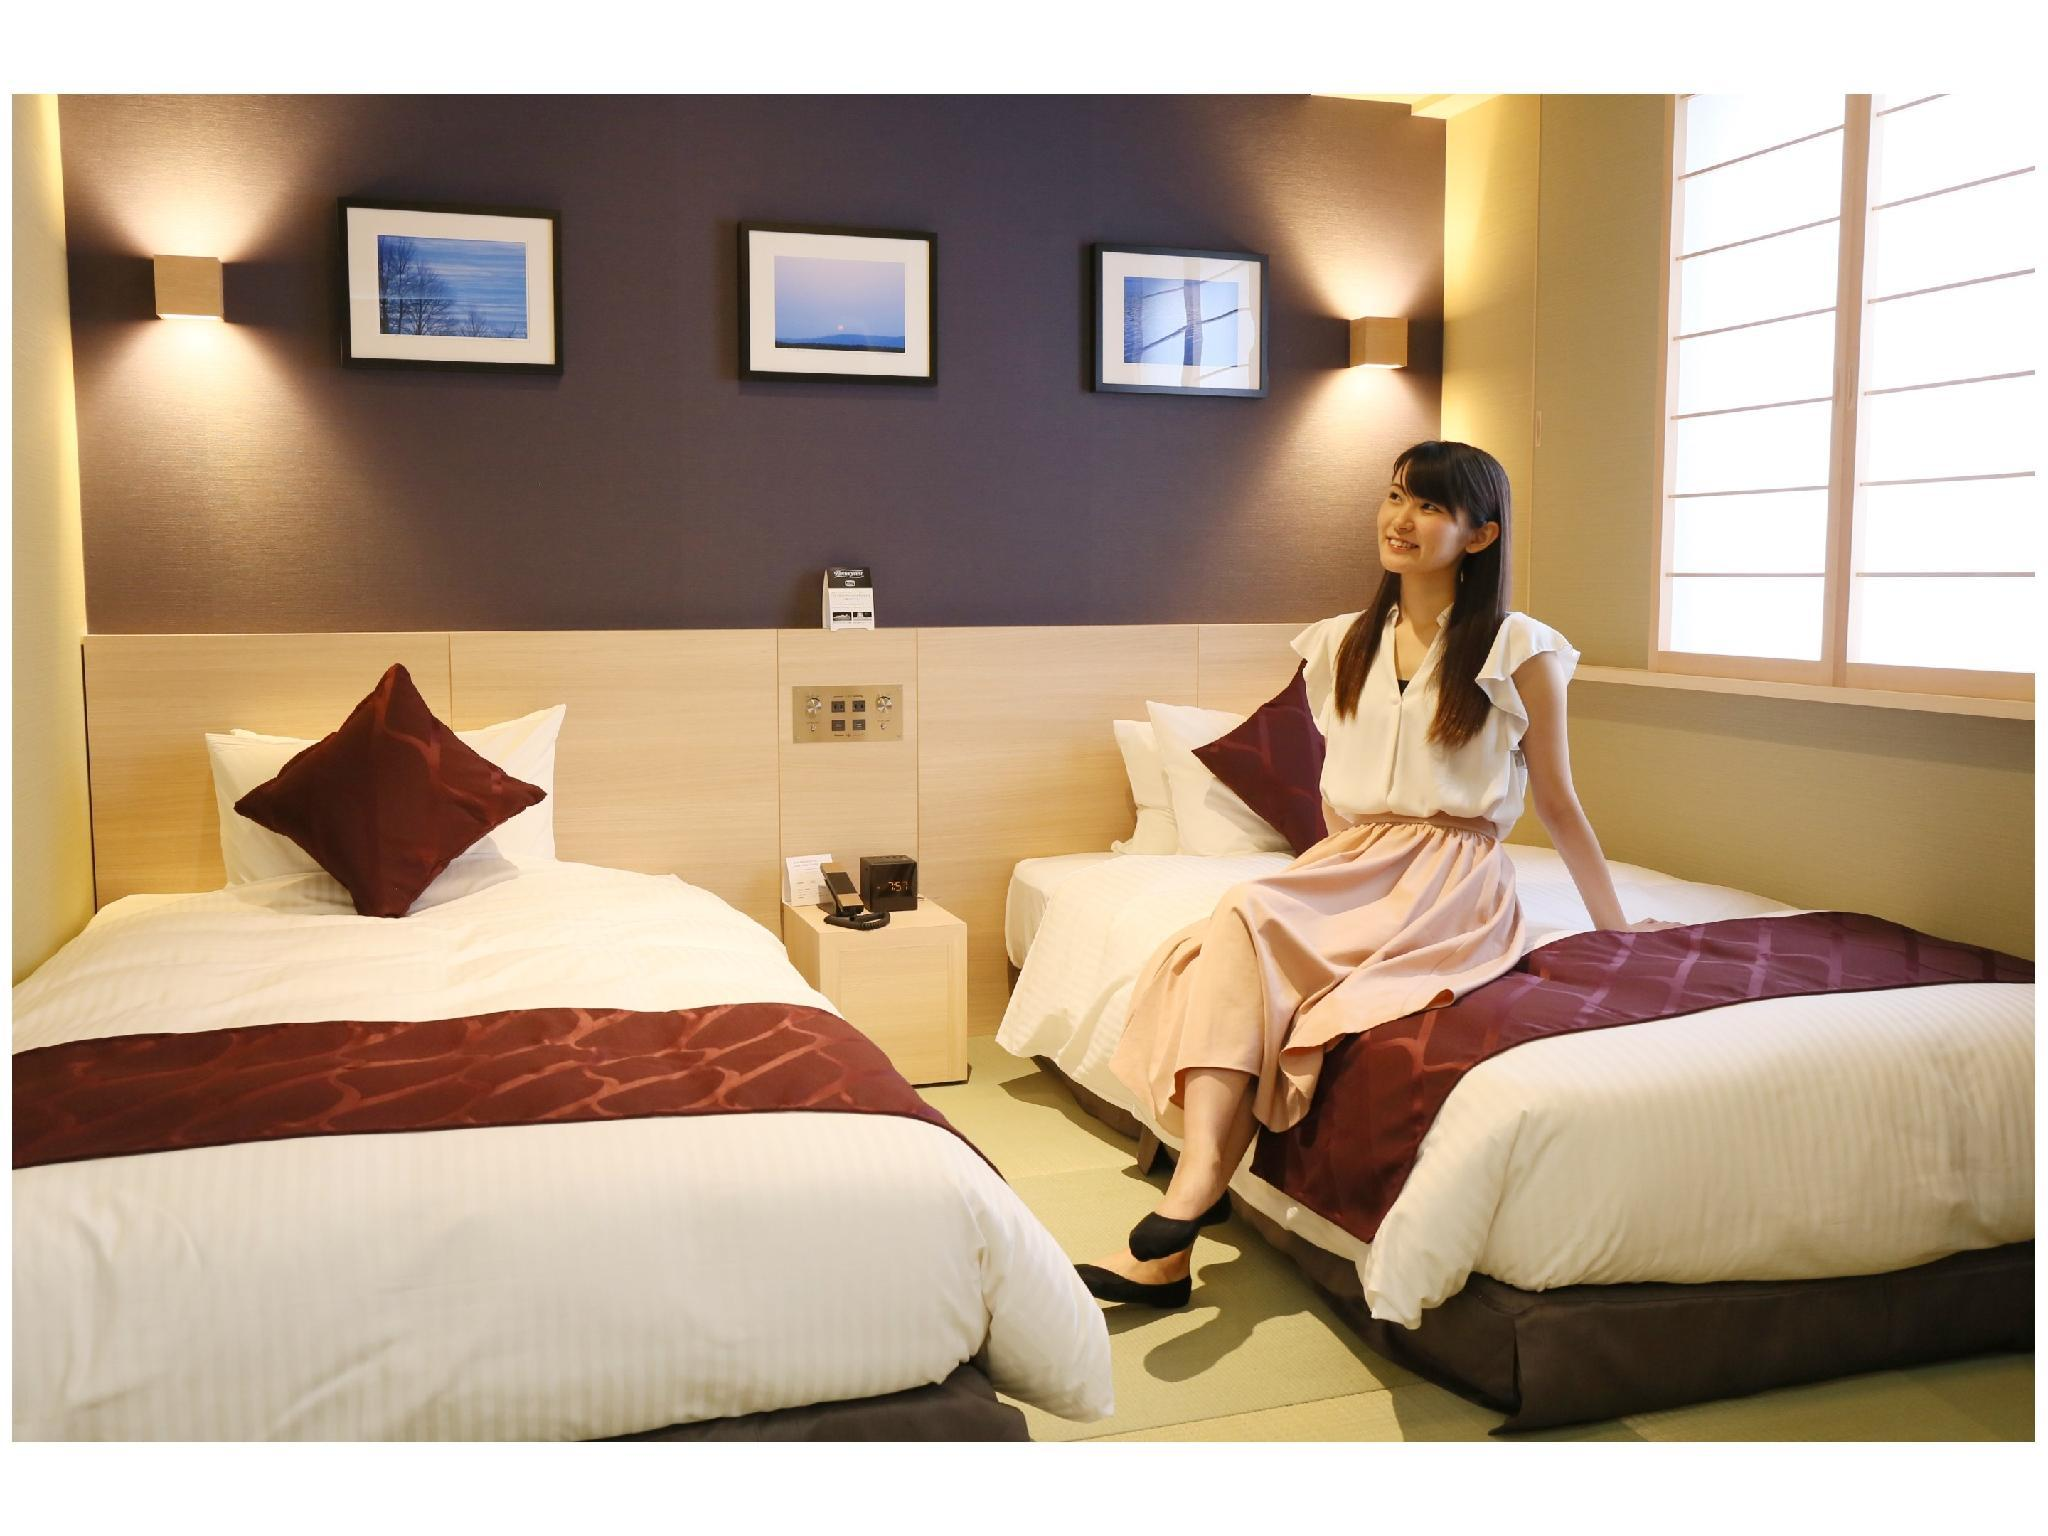 일본식 트윈룸(베드×2) (Japanese-style Twin Room (2 Beds))